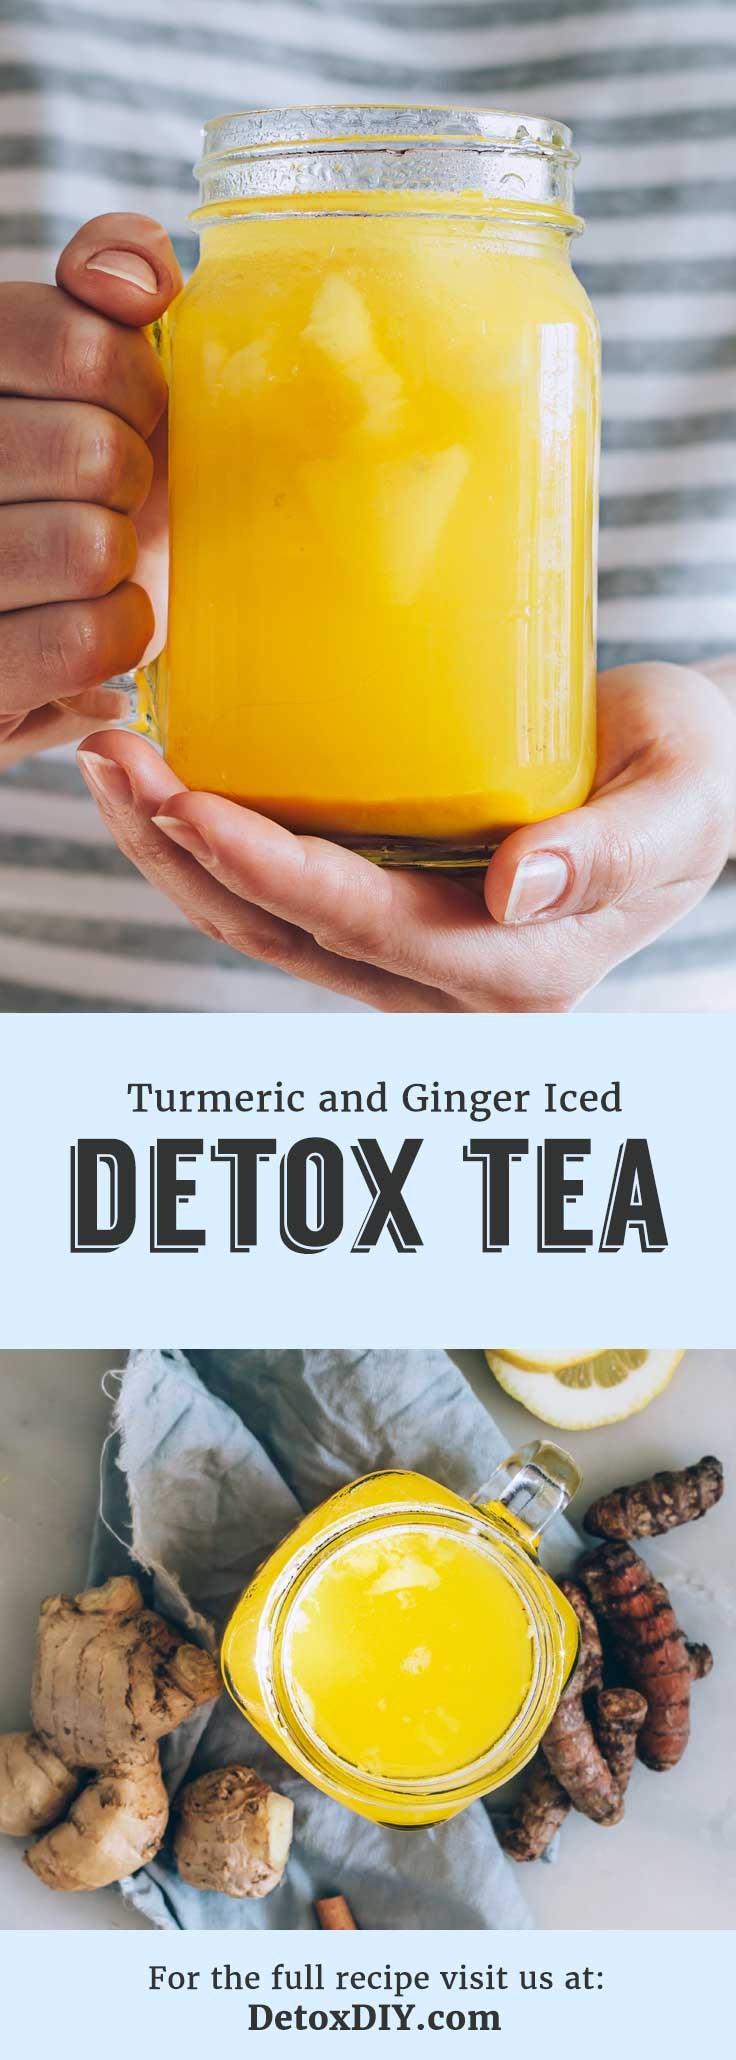 This iced turmeric and ginger detox tea is not only my favorite iced detox tea, but my favorite iced tea to drink in general! So refreshing and cleansing. Love this recipe.